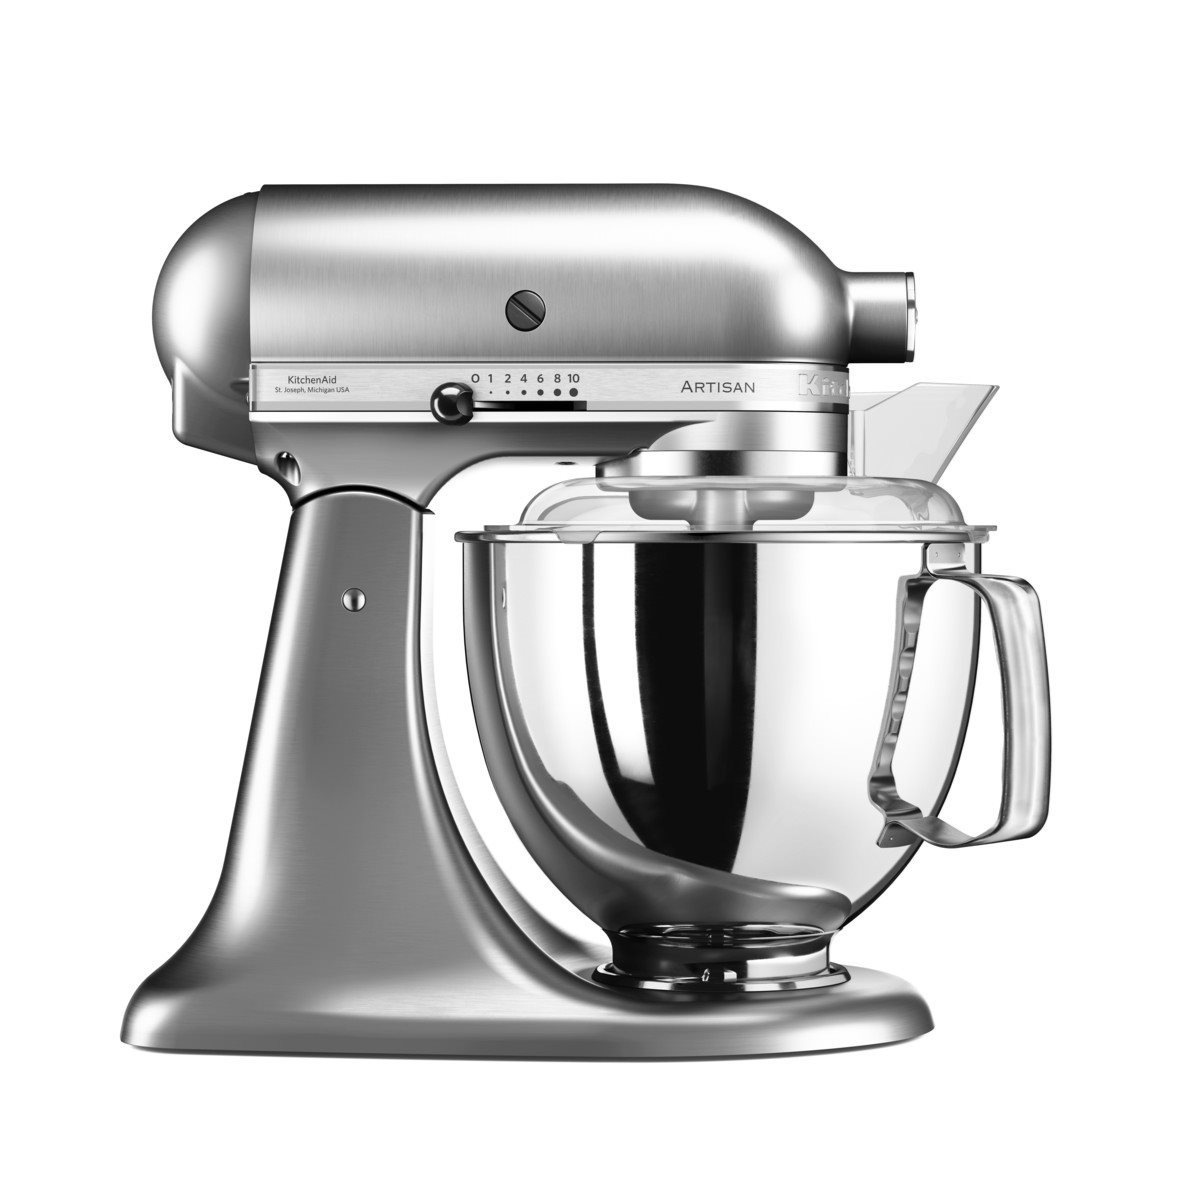 Mixer cu bol Artisan Elegance 5KSM175PSENK 48 L Brushed Nickel 300W KitchenAid